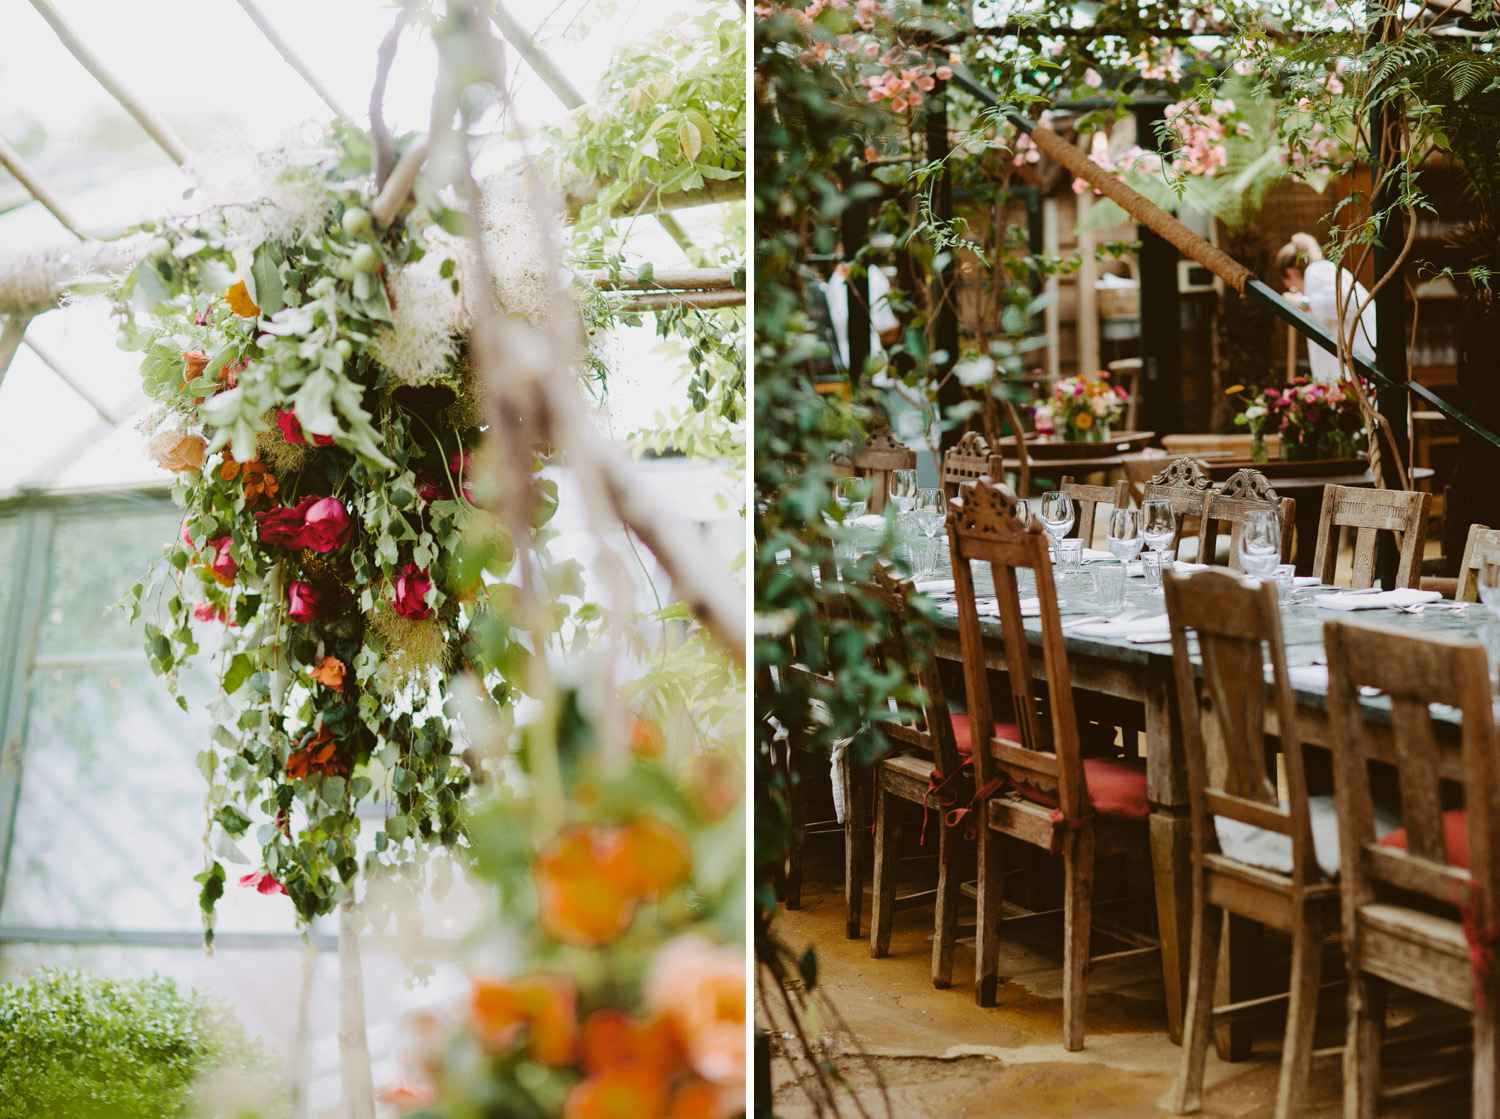 petersham-nurseries-016-5